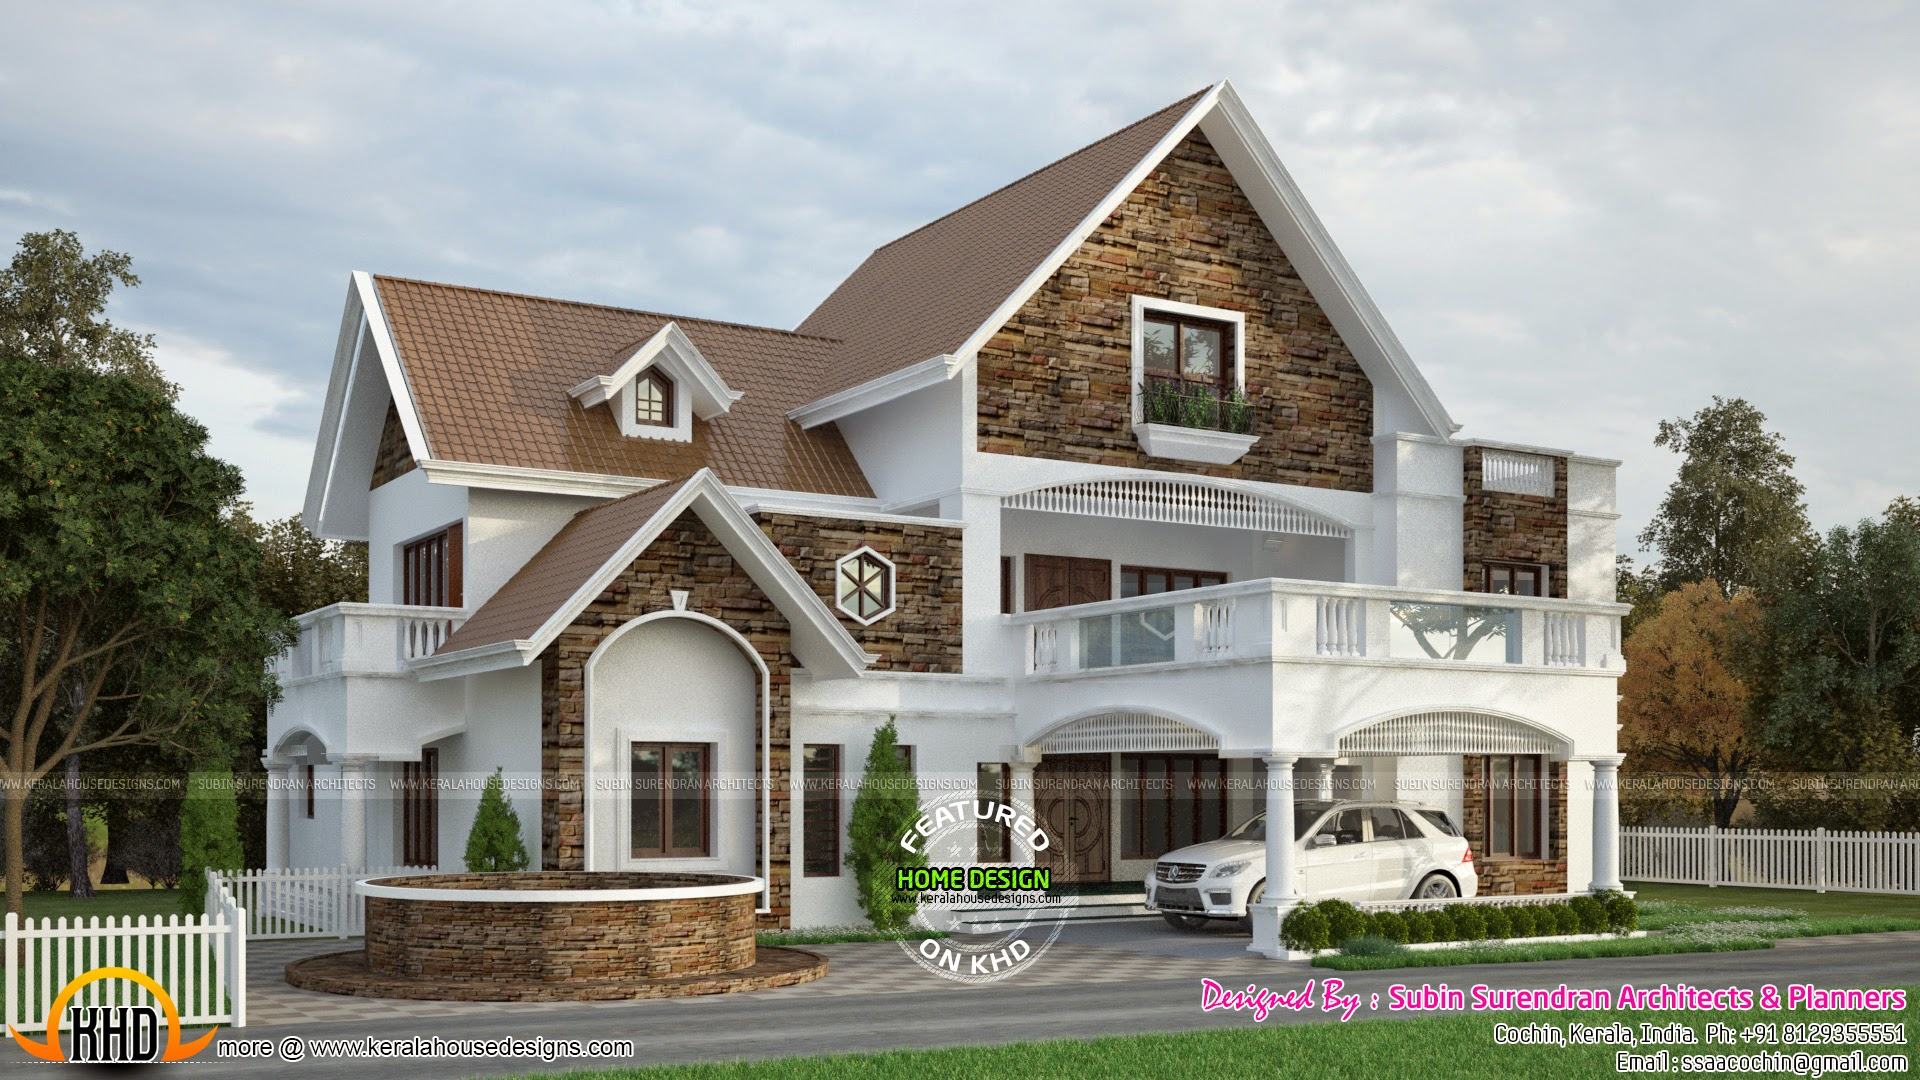 Sloped roof elegant home design kerala home design and for European estate house plans